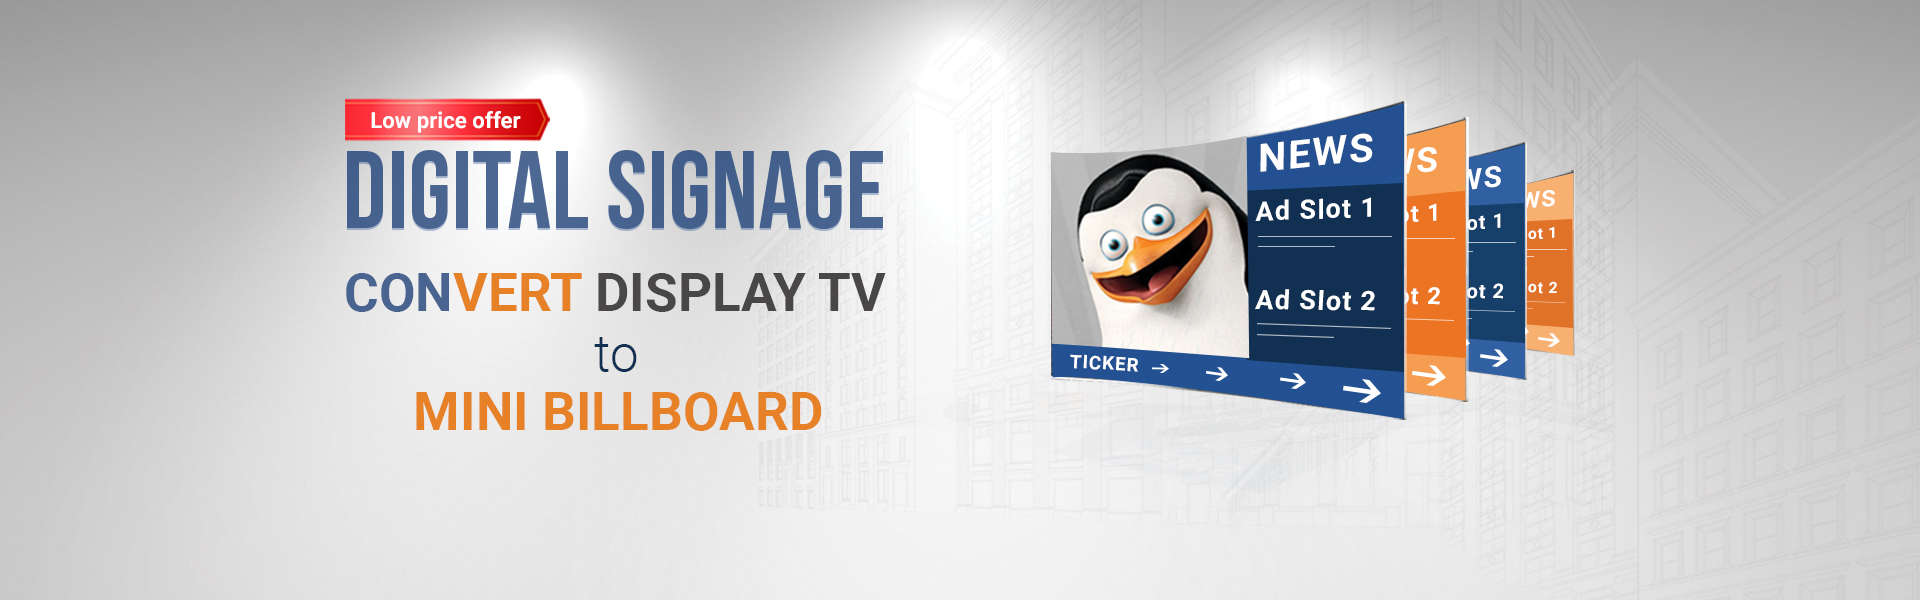 Digital Signage Solution, Digital Signage